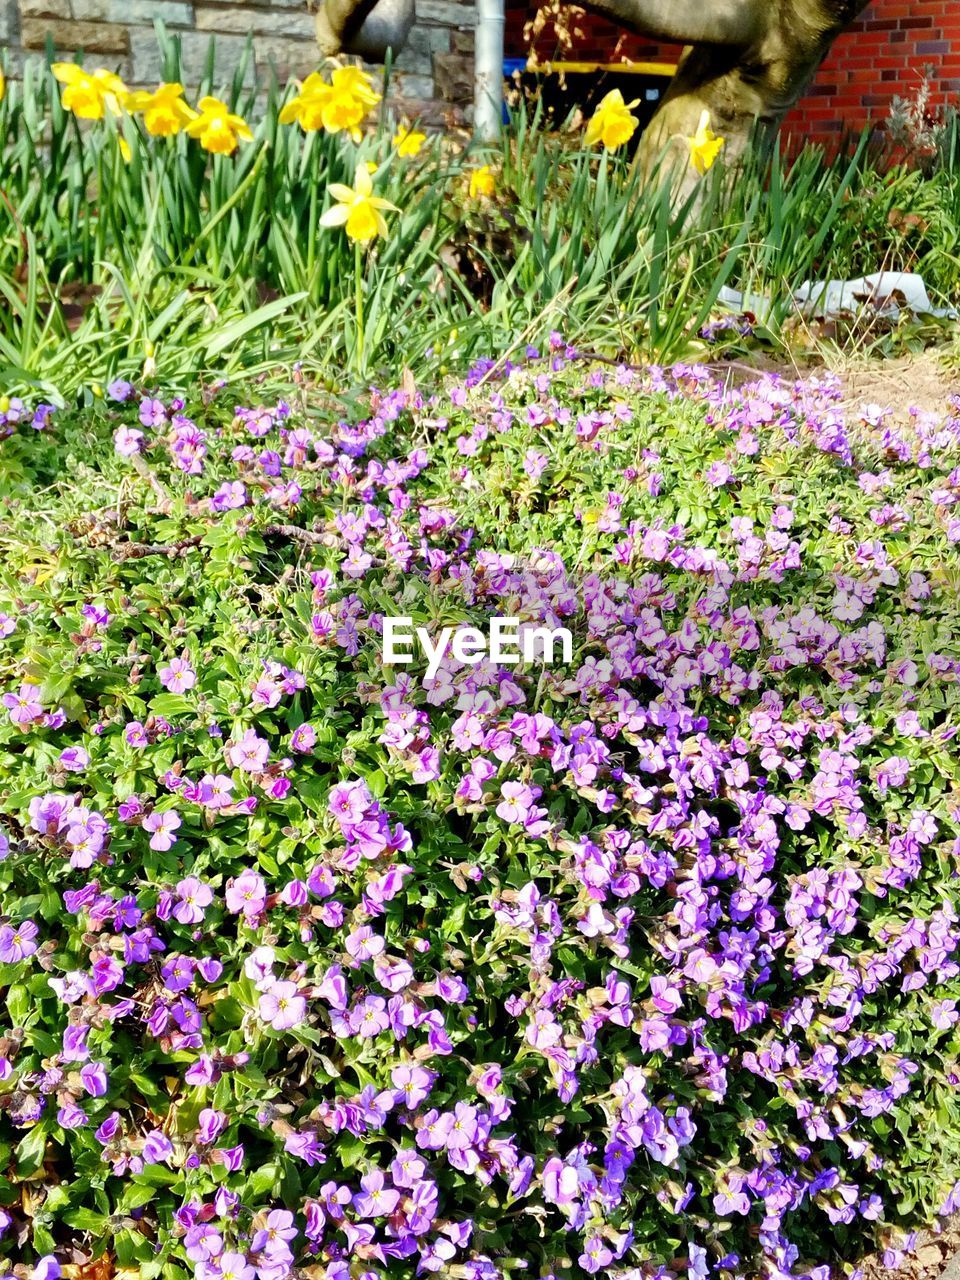 flower, growth, plant, fragility, beauty in nature, freshness, nature, petal, blooming, no people, day, outdoors, flowerbed, springtime, flower head, close-up, petunia